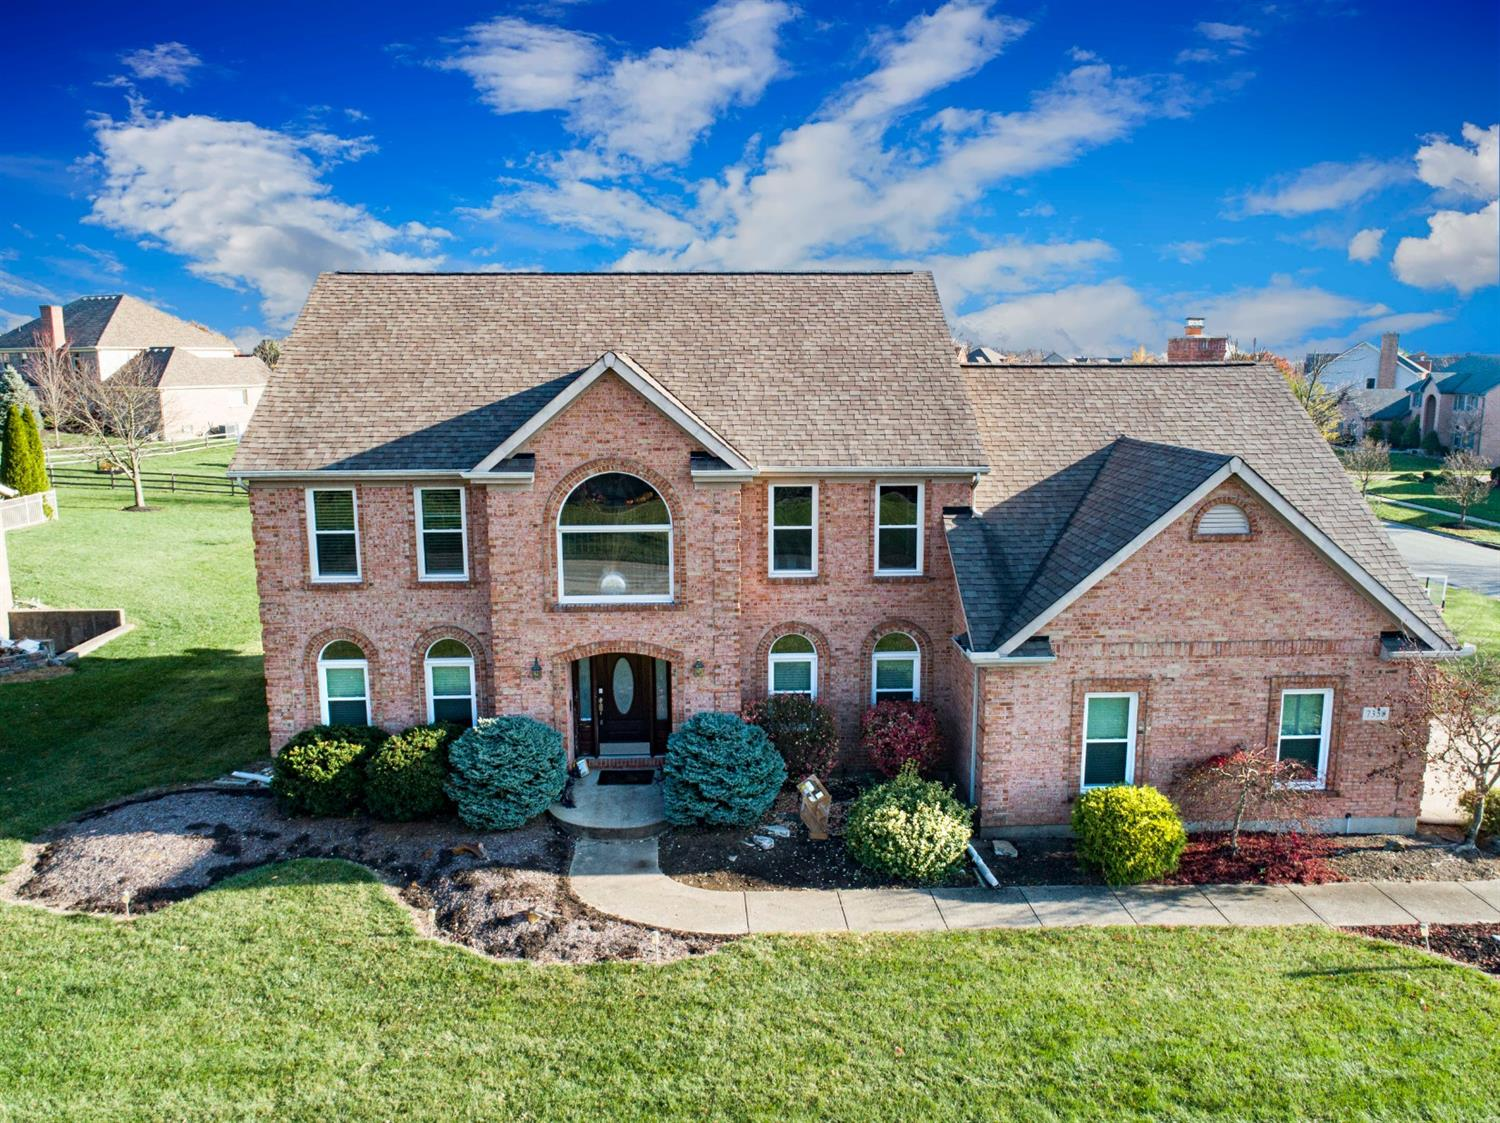 Photo of 7358 Walnut Creek Drive, West Chester, OH 45069